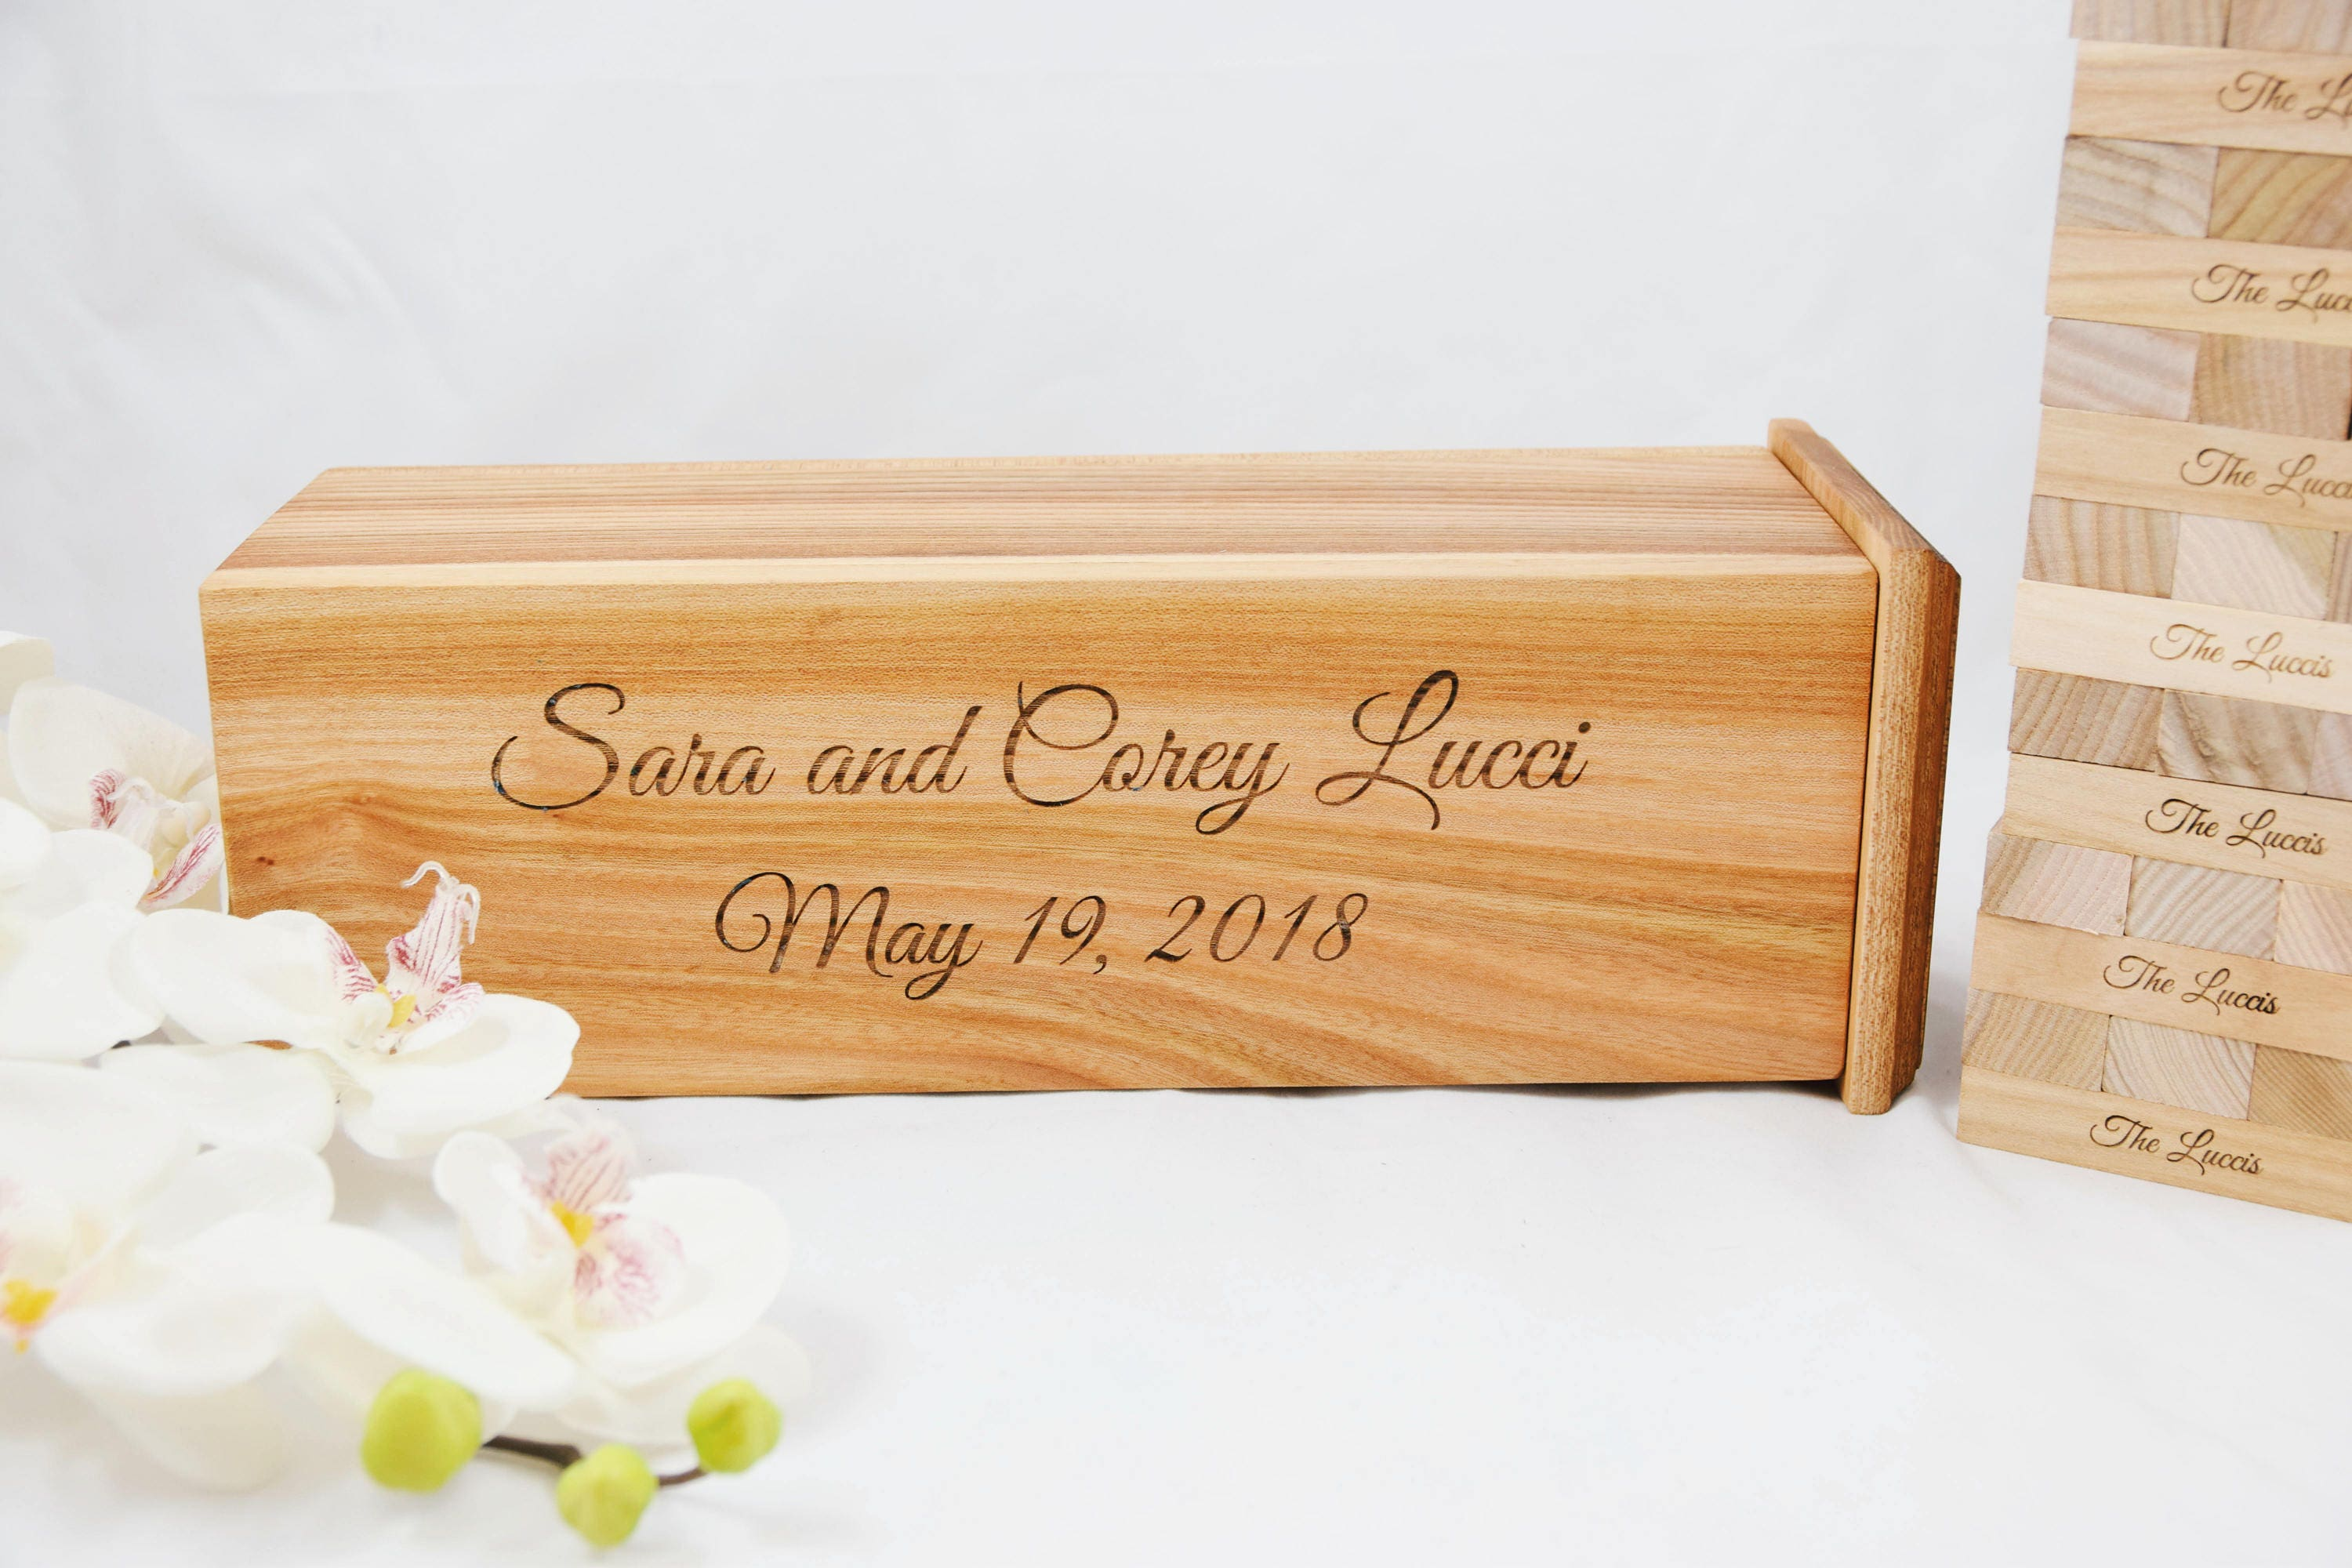 Personalised Wedding Gifts For Guests: Personalized Wedding Gift Guest Book Custom Made Engraved